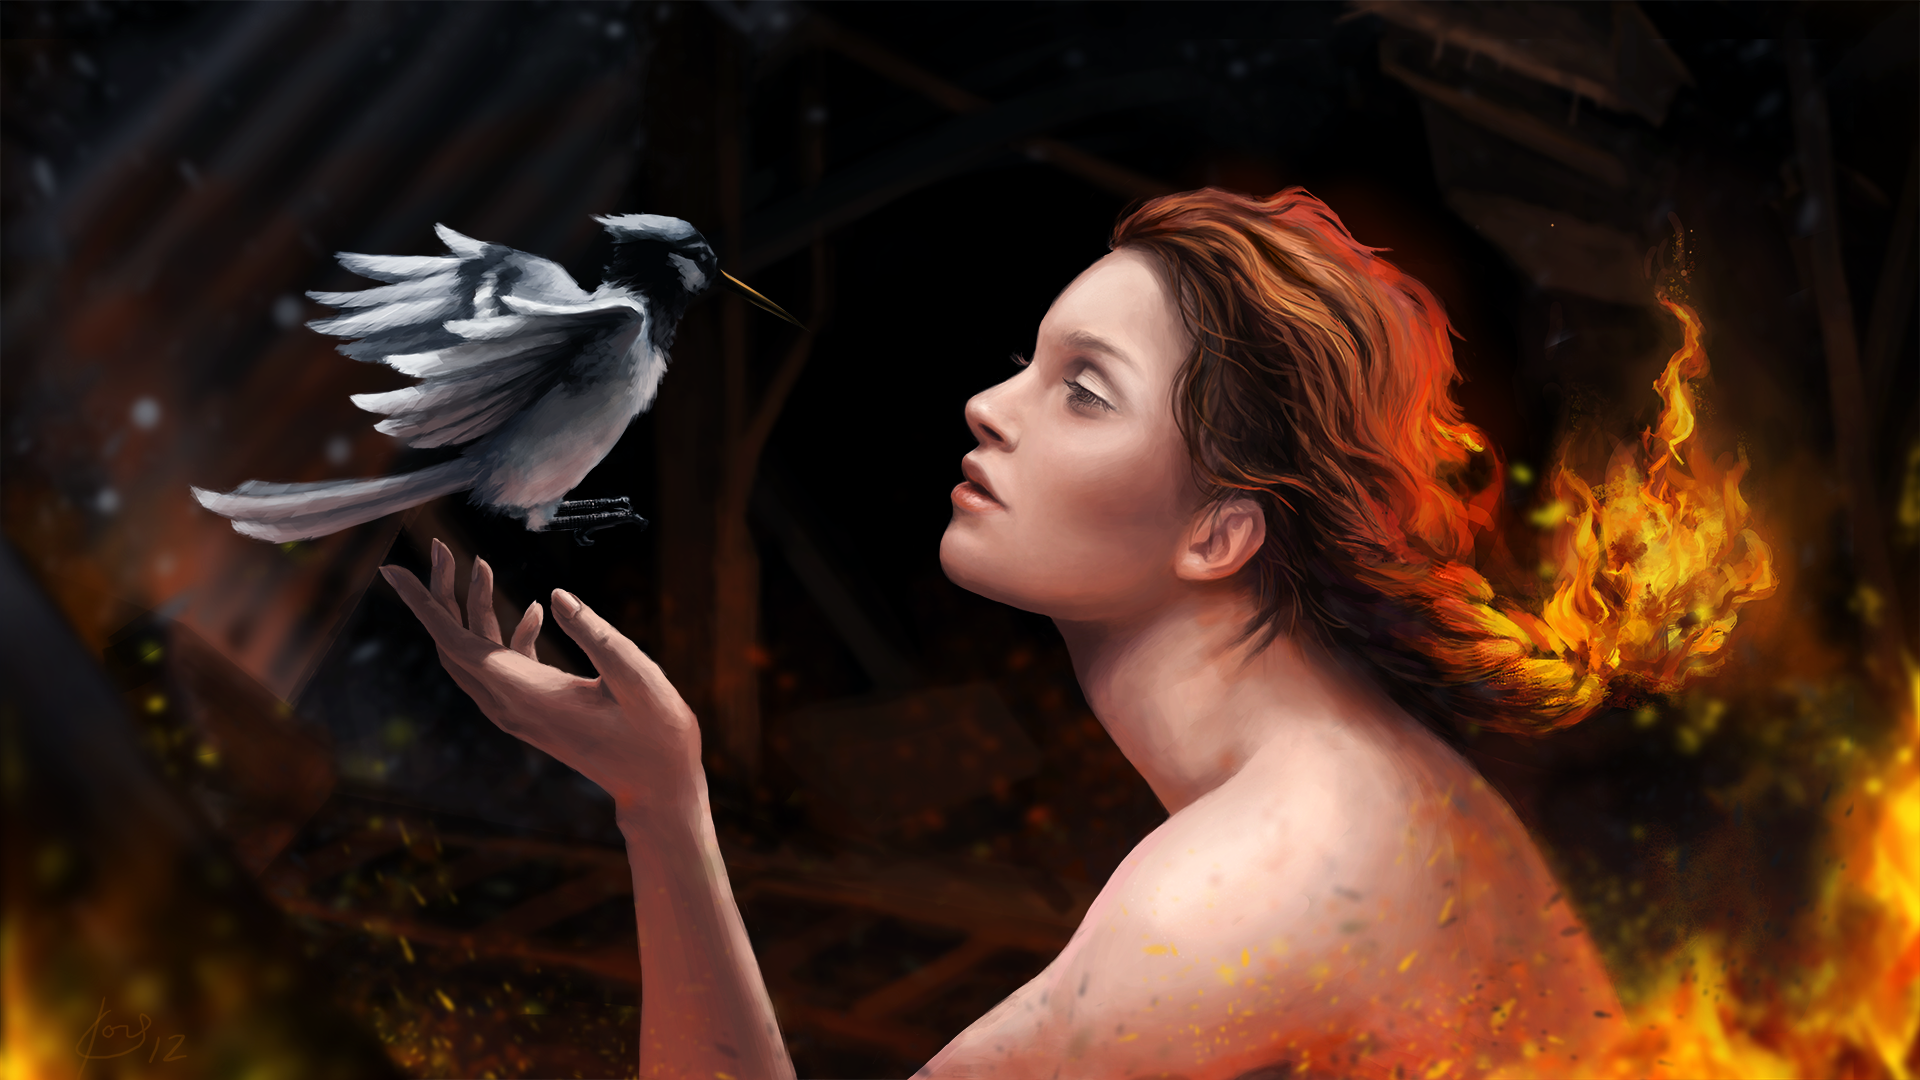 General 1920x1080 artwork birds women animals redhead fire